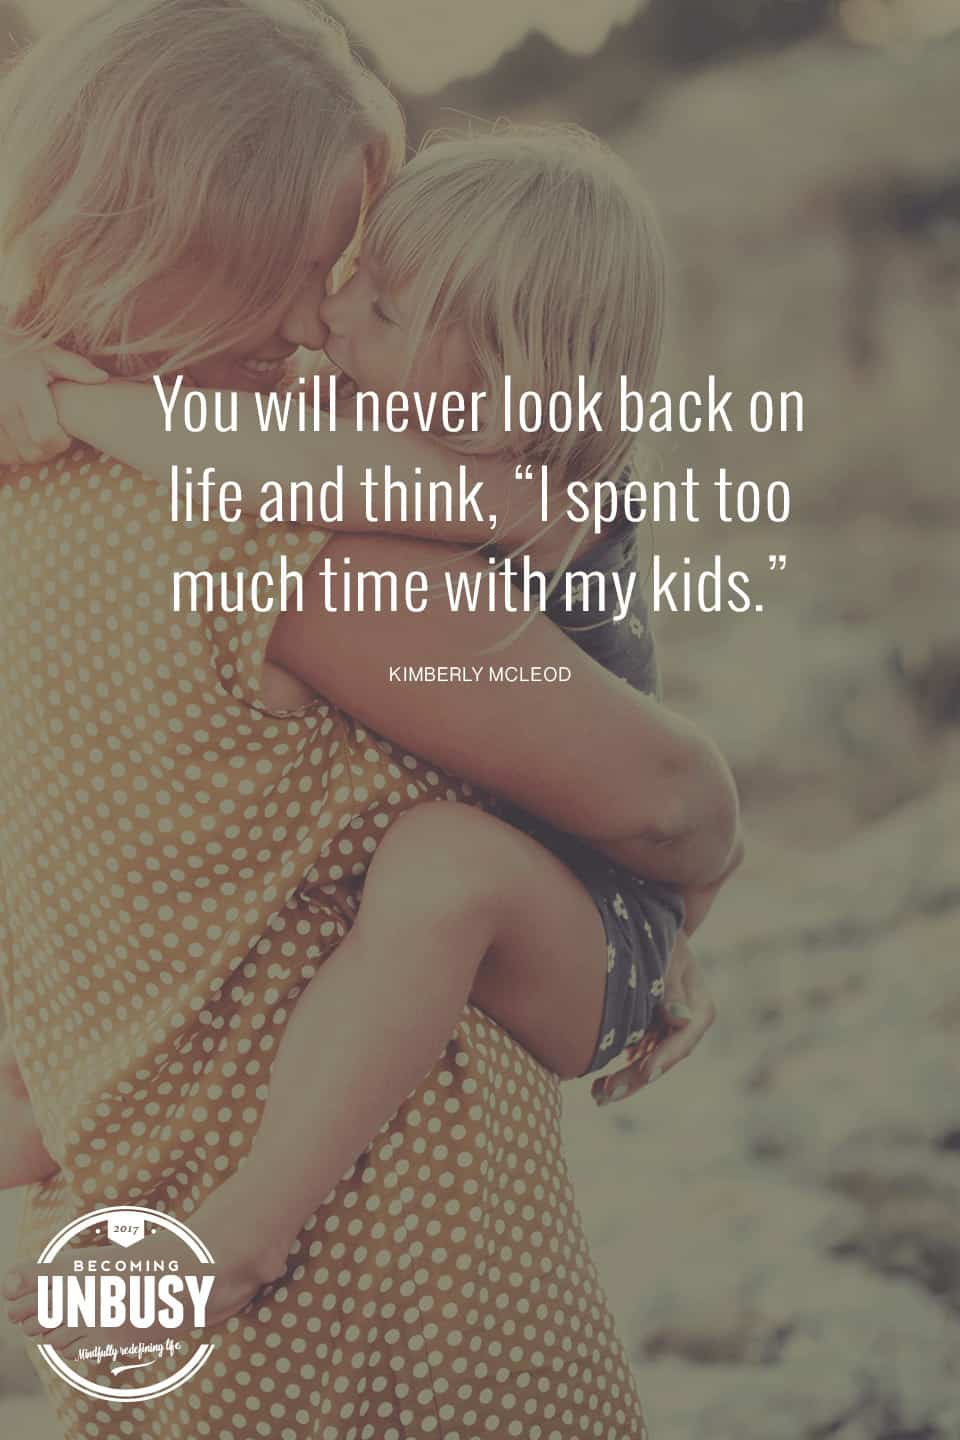 You will never look back at life and think, I spent too much time with my kids. - 10 Benefits Kids Gain From An UnBusy Life *Love this post and site